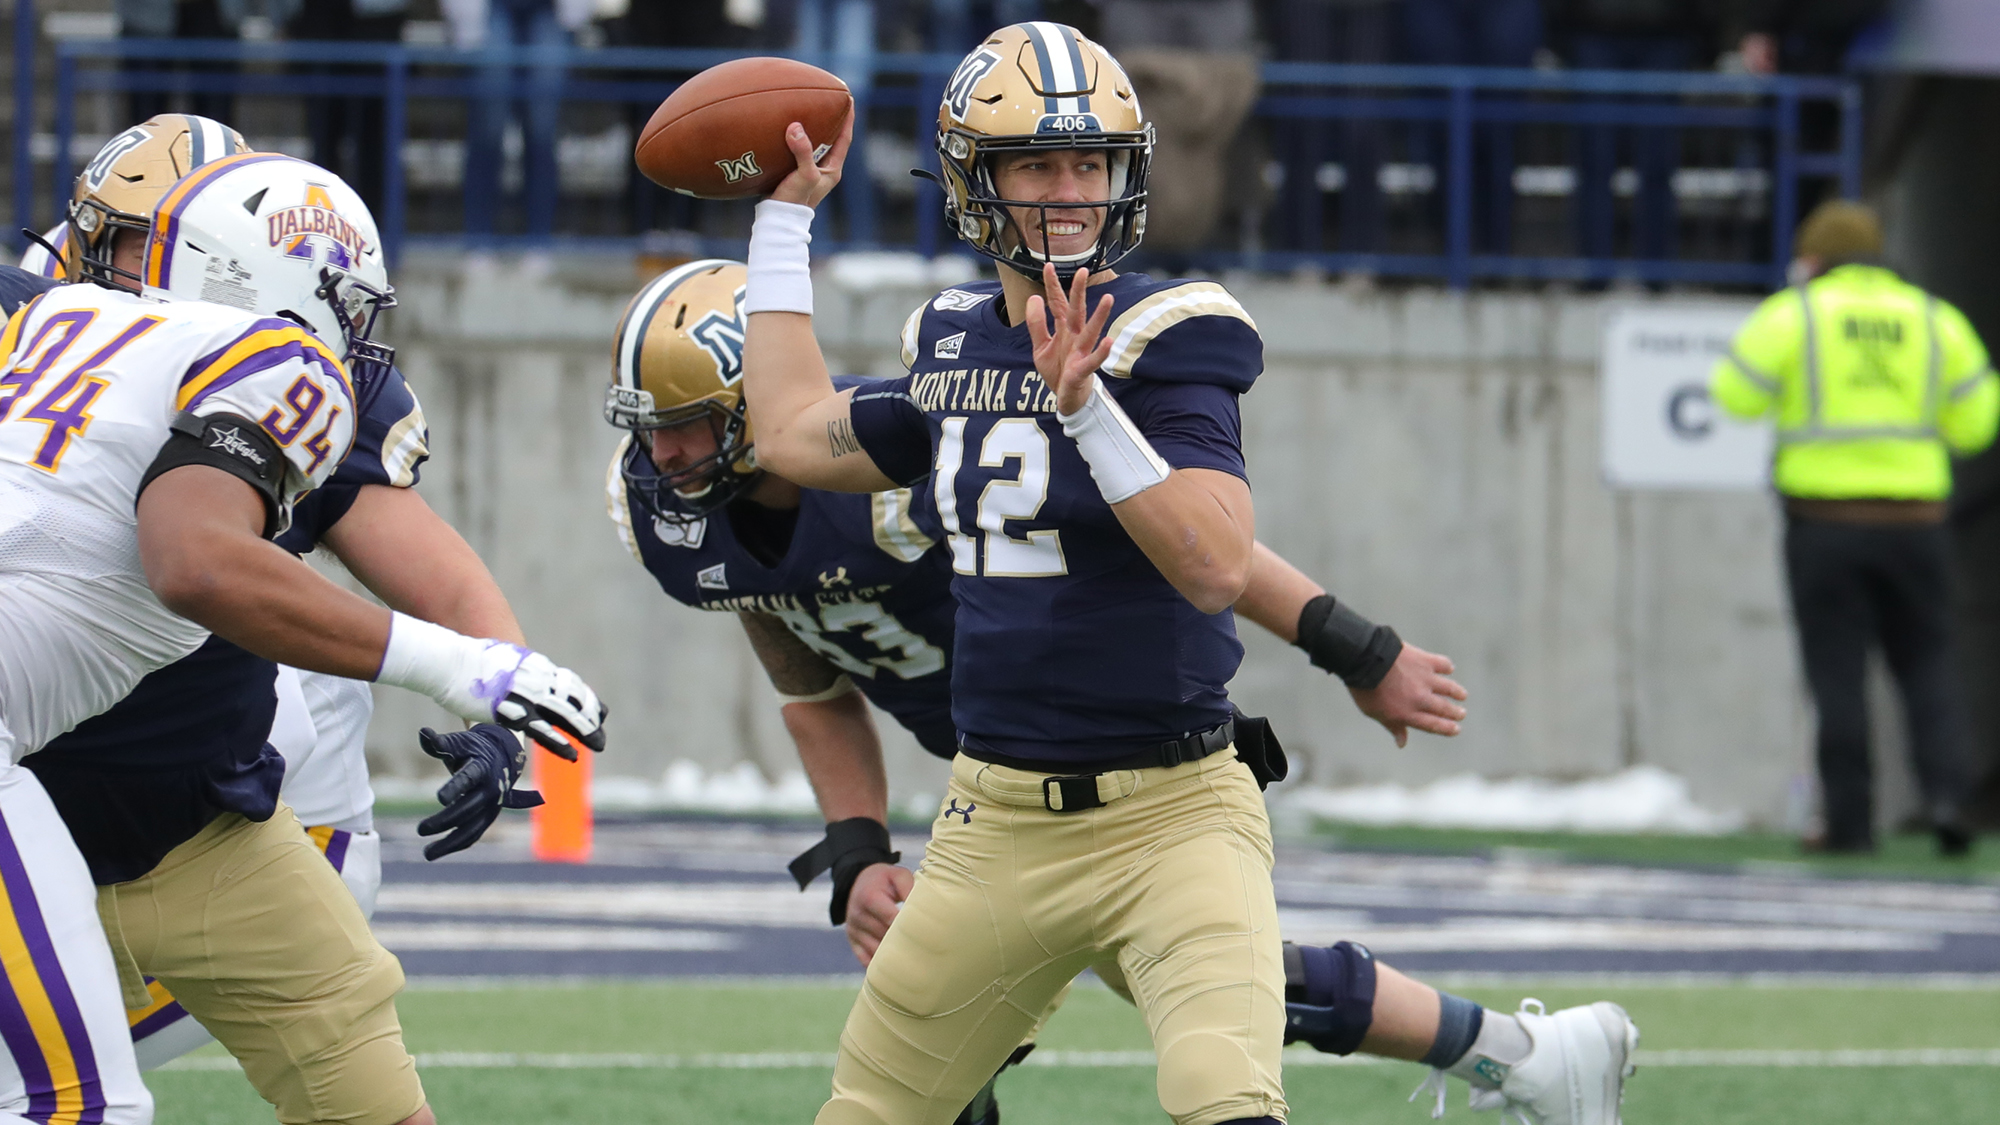 NOTES and QUOTES: Montana State 47, UAlbany 21